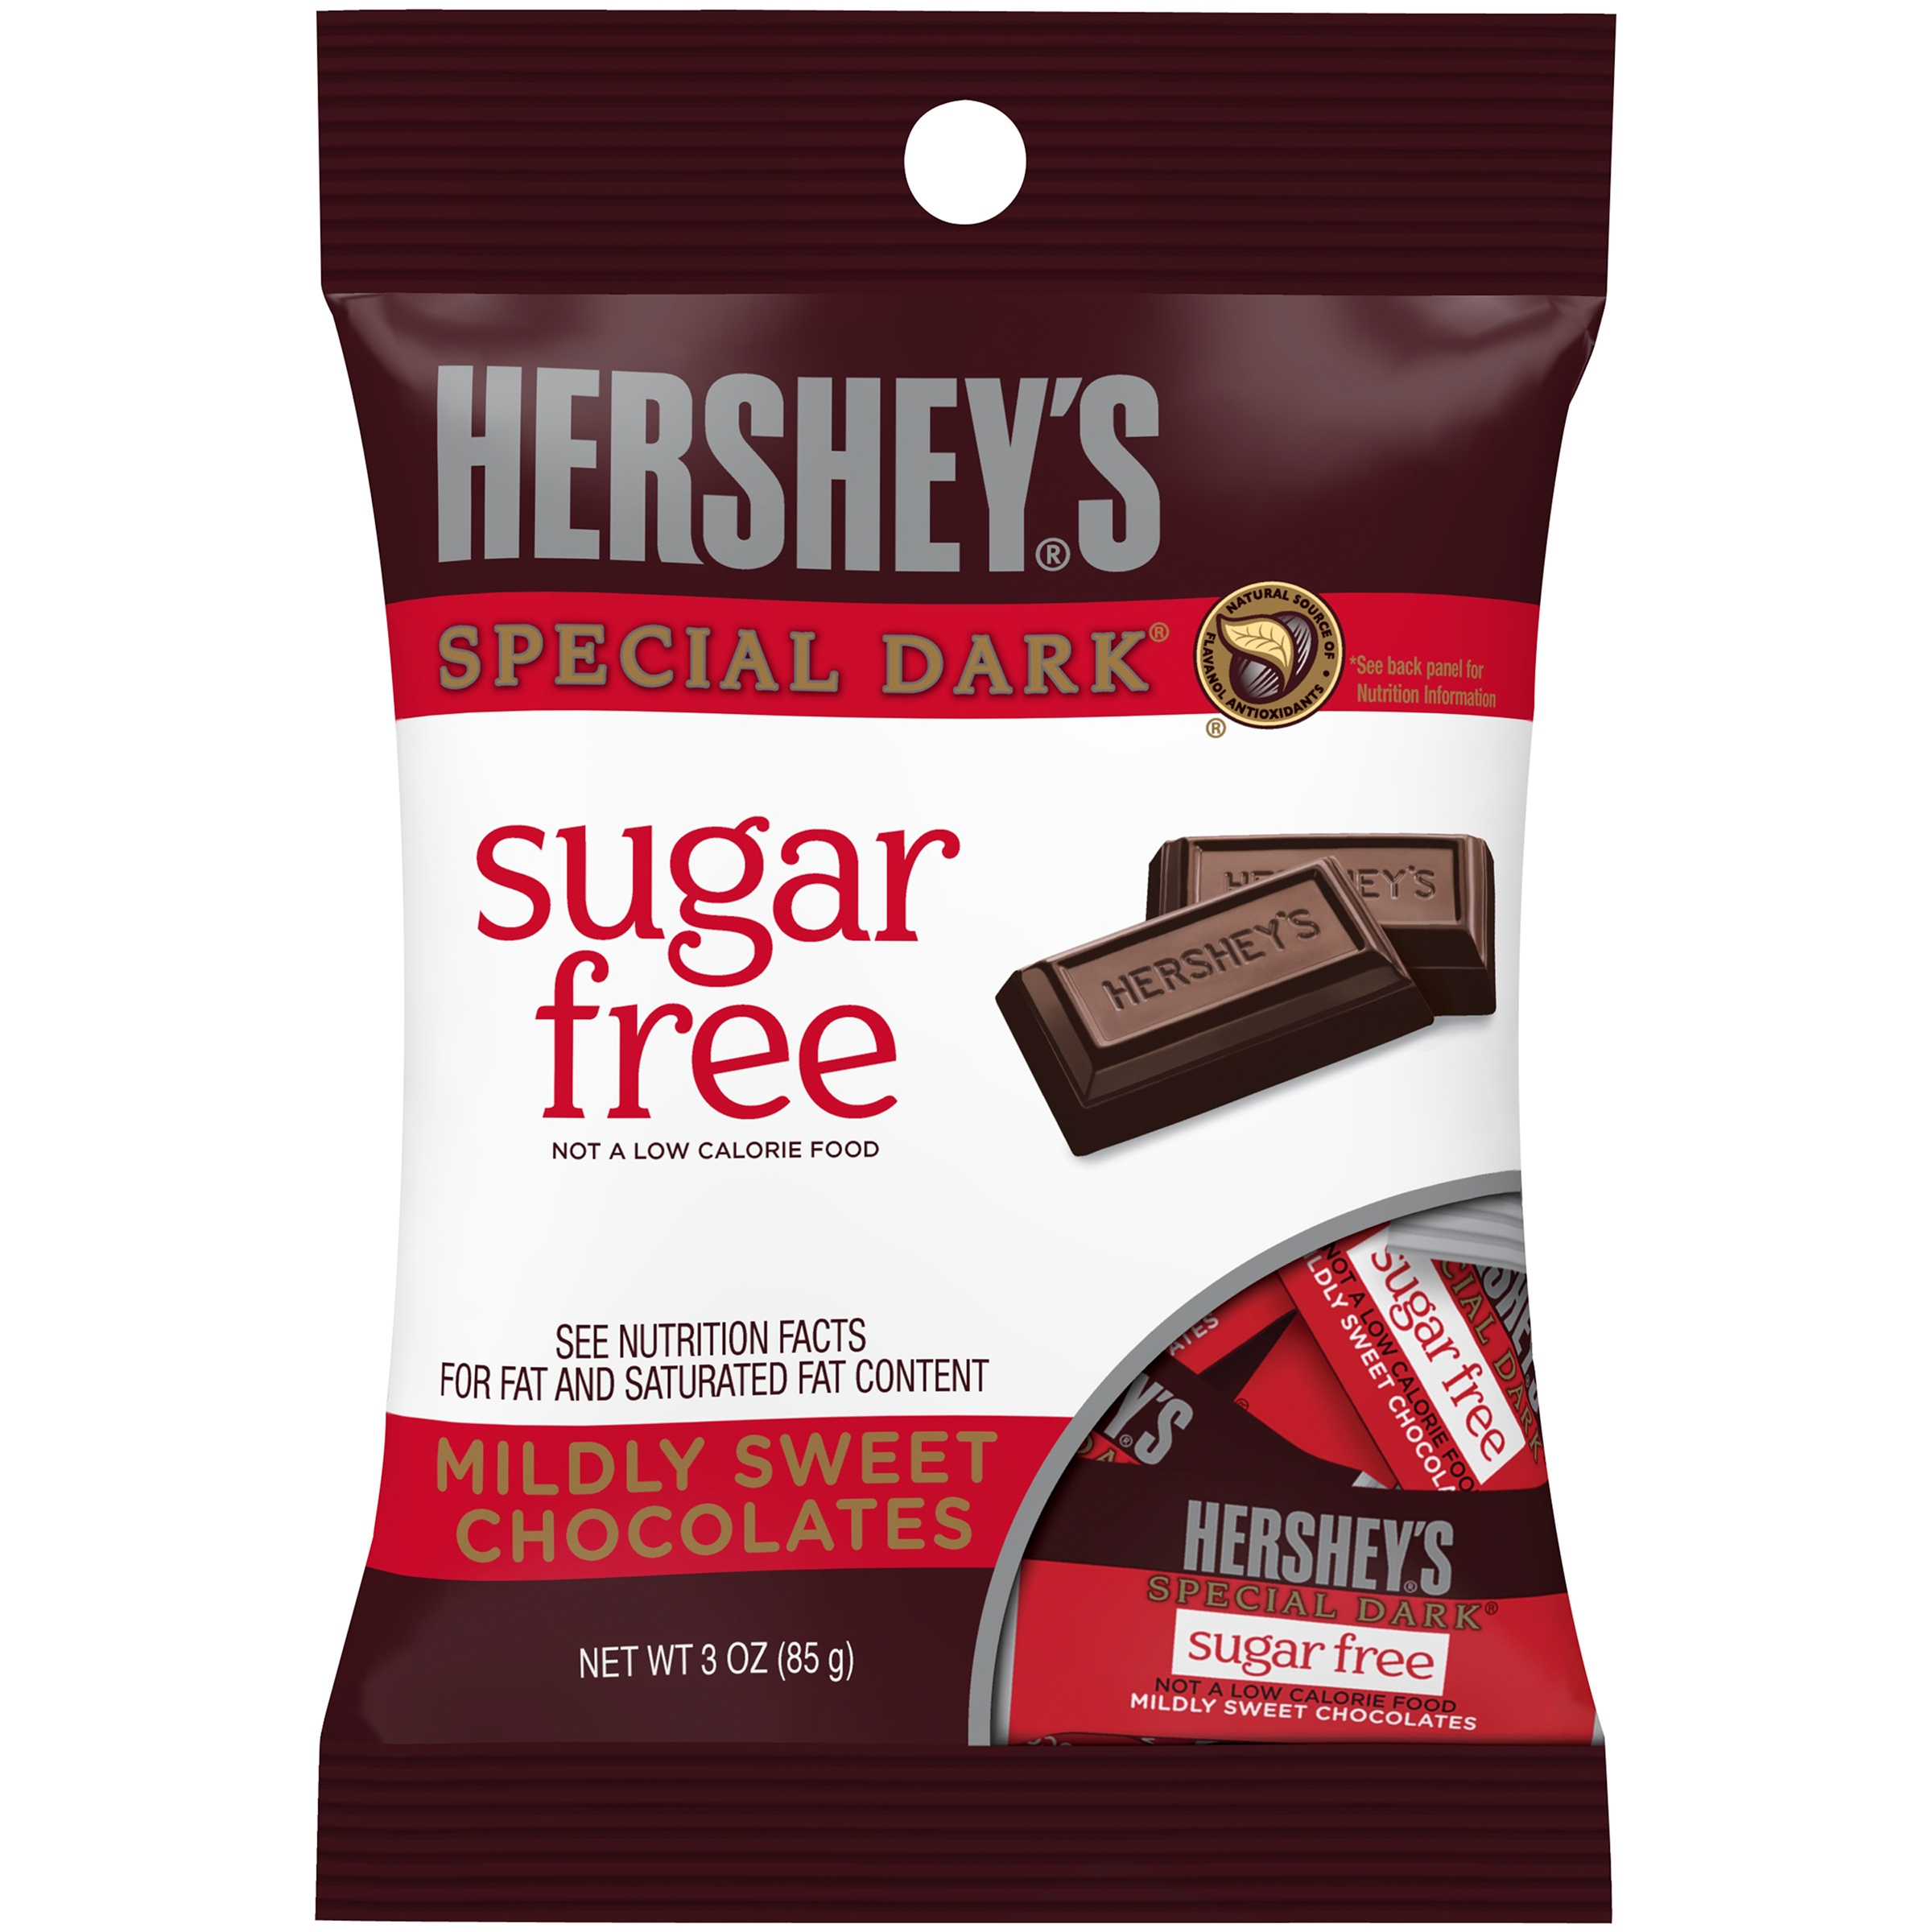 Hershey's Special Dark, Sugar Free Chocolate Candy, 3 Oz